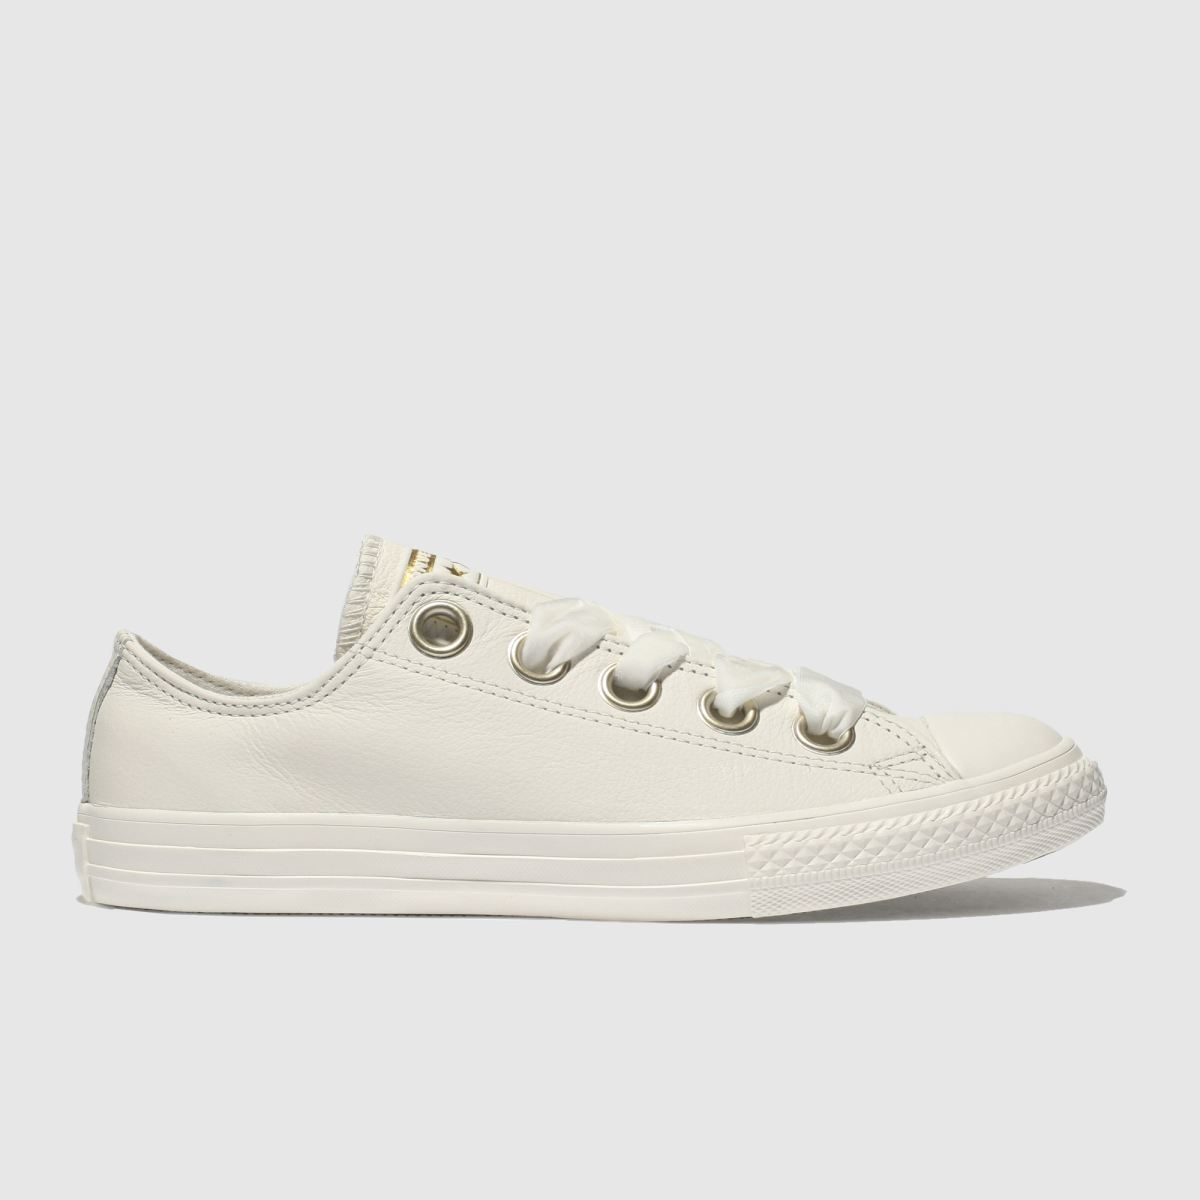 Converse White All Star Big Eyelets Lo Girls Youth Youth